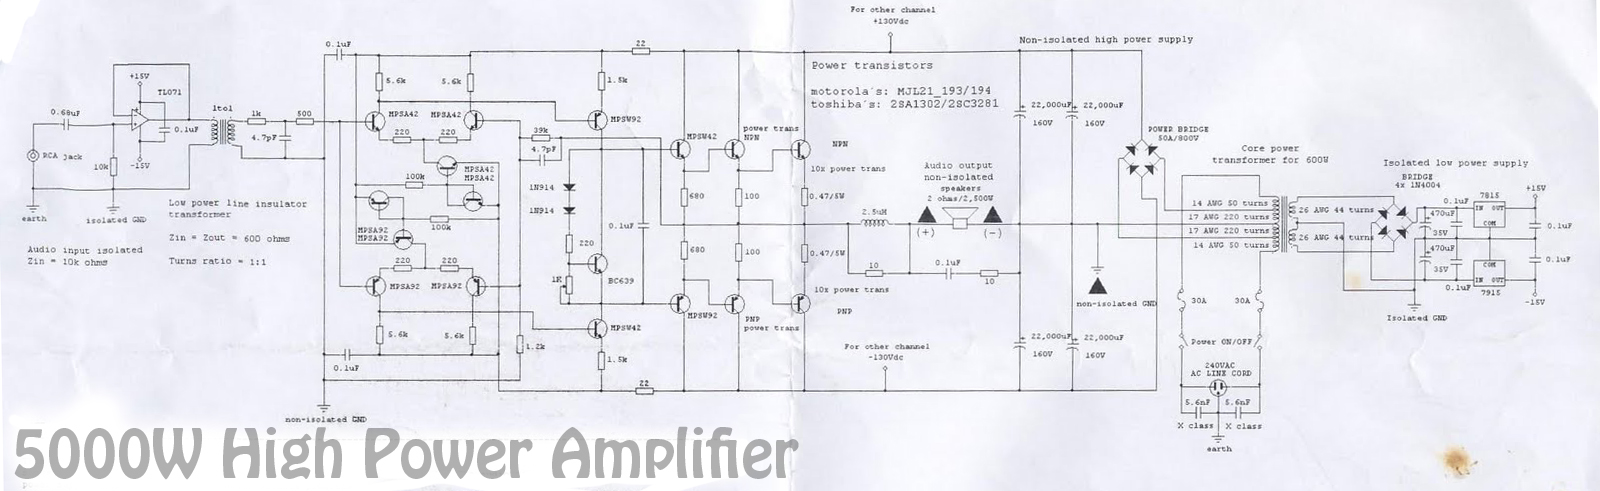 5000W High Power Amplifier Audio Circuits Electronic Circuit